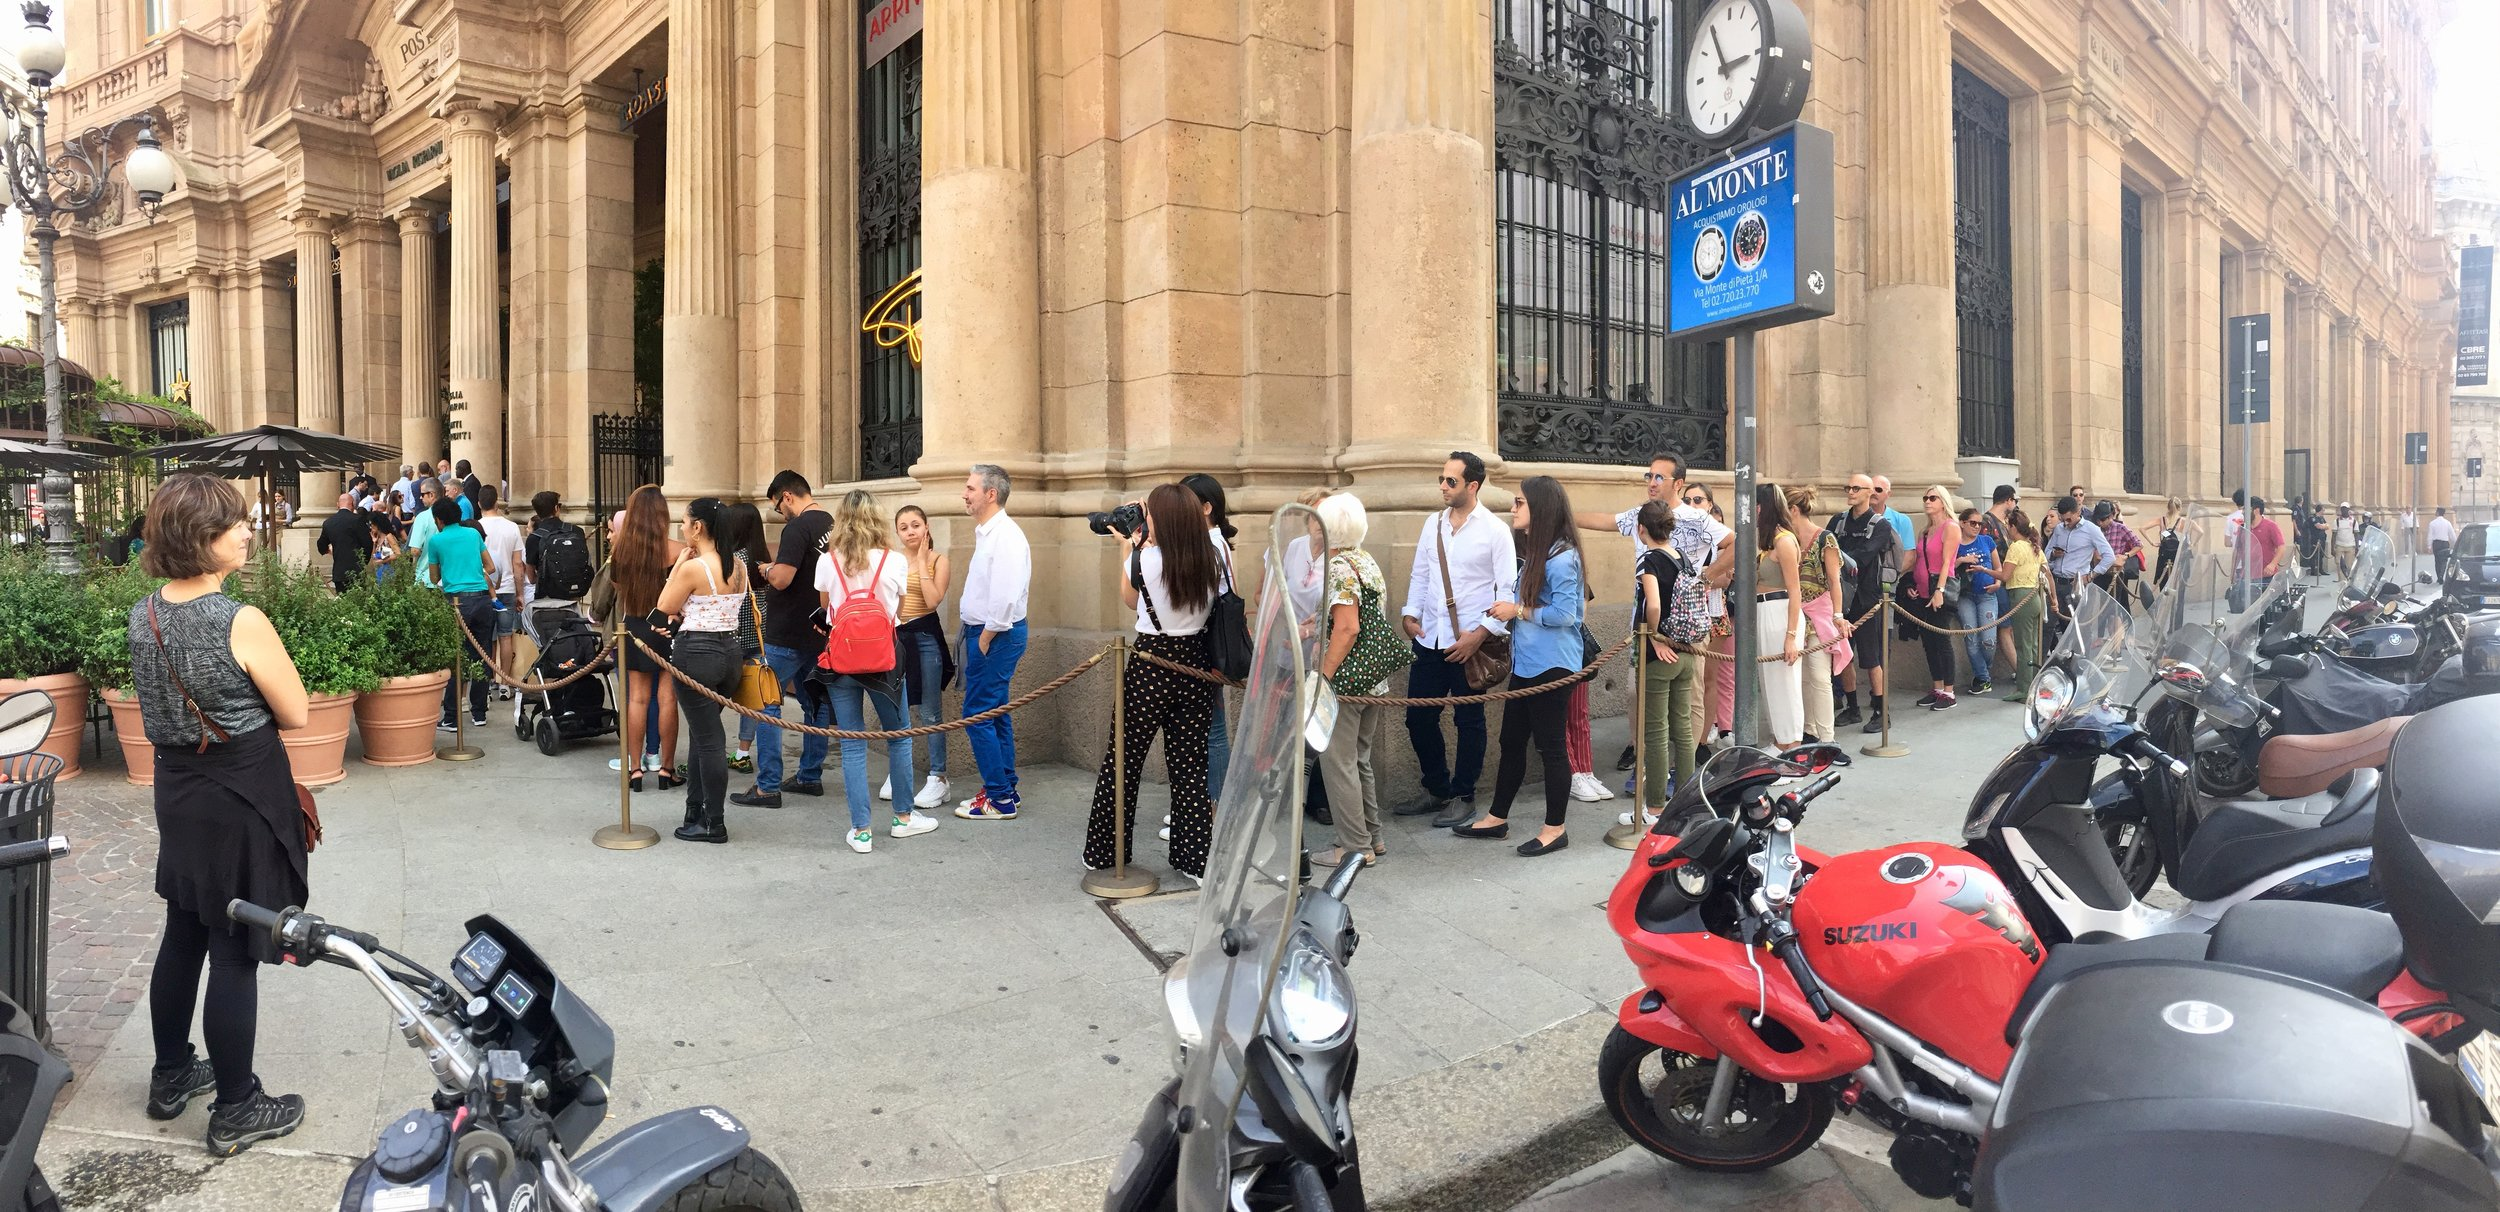 The line at the new   Starbucks Reserve Roastery   in Milano